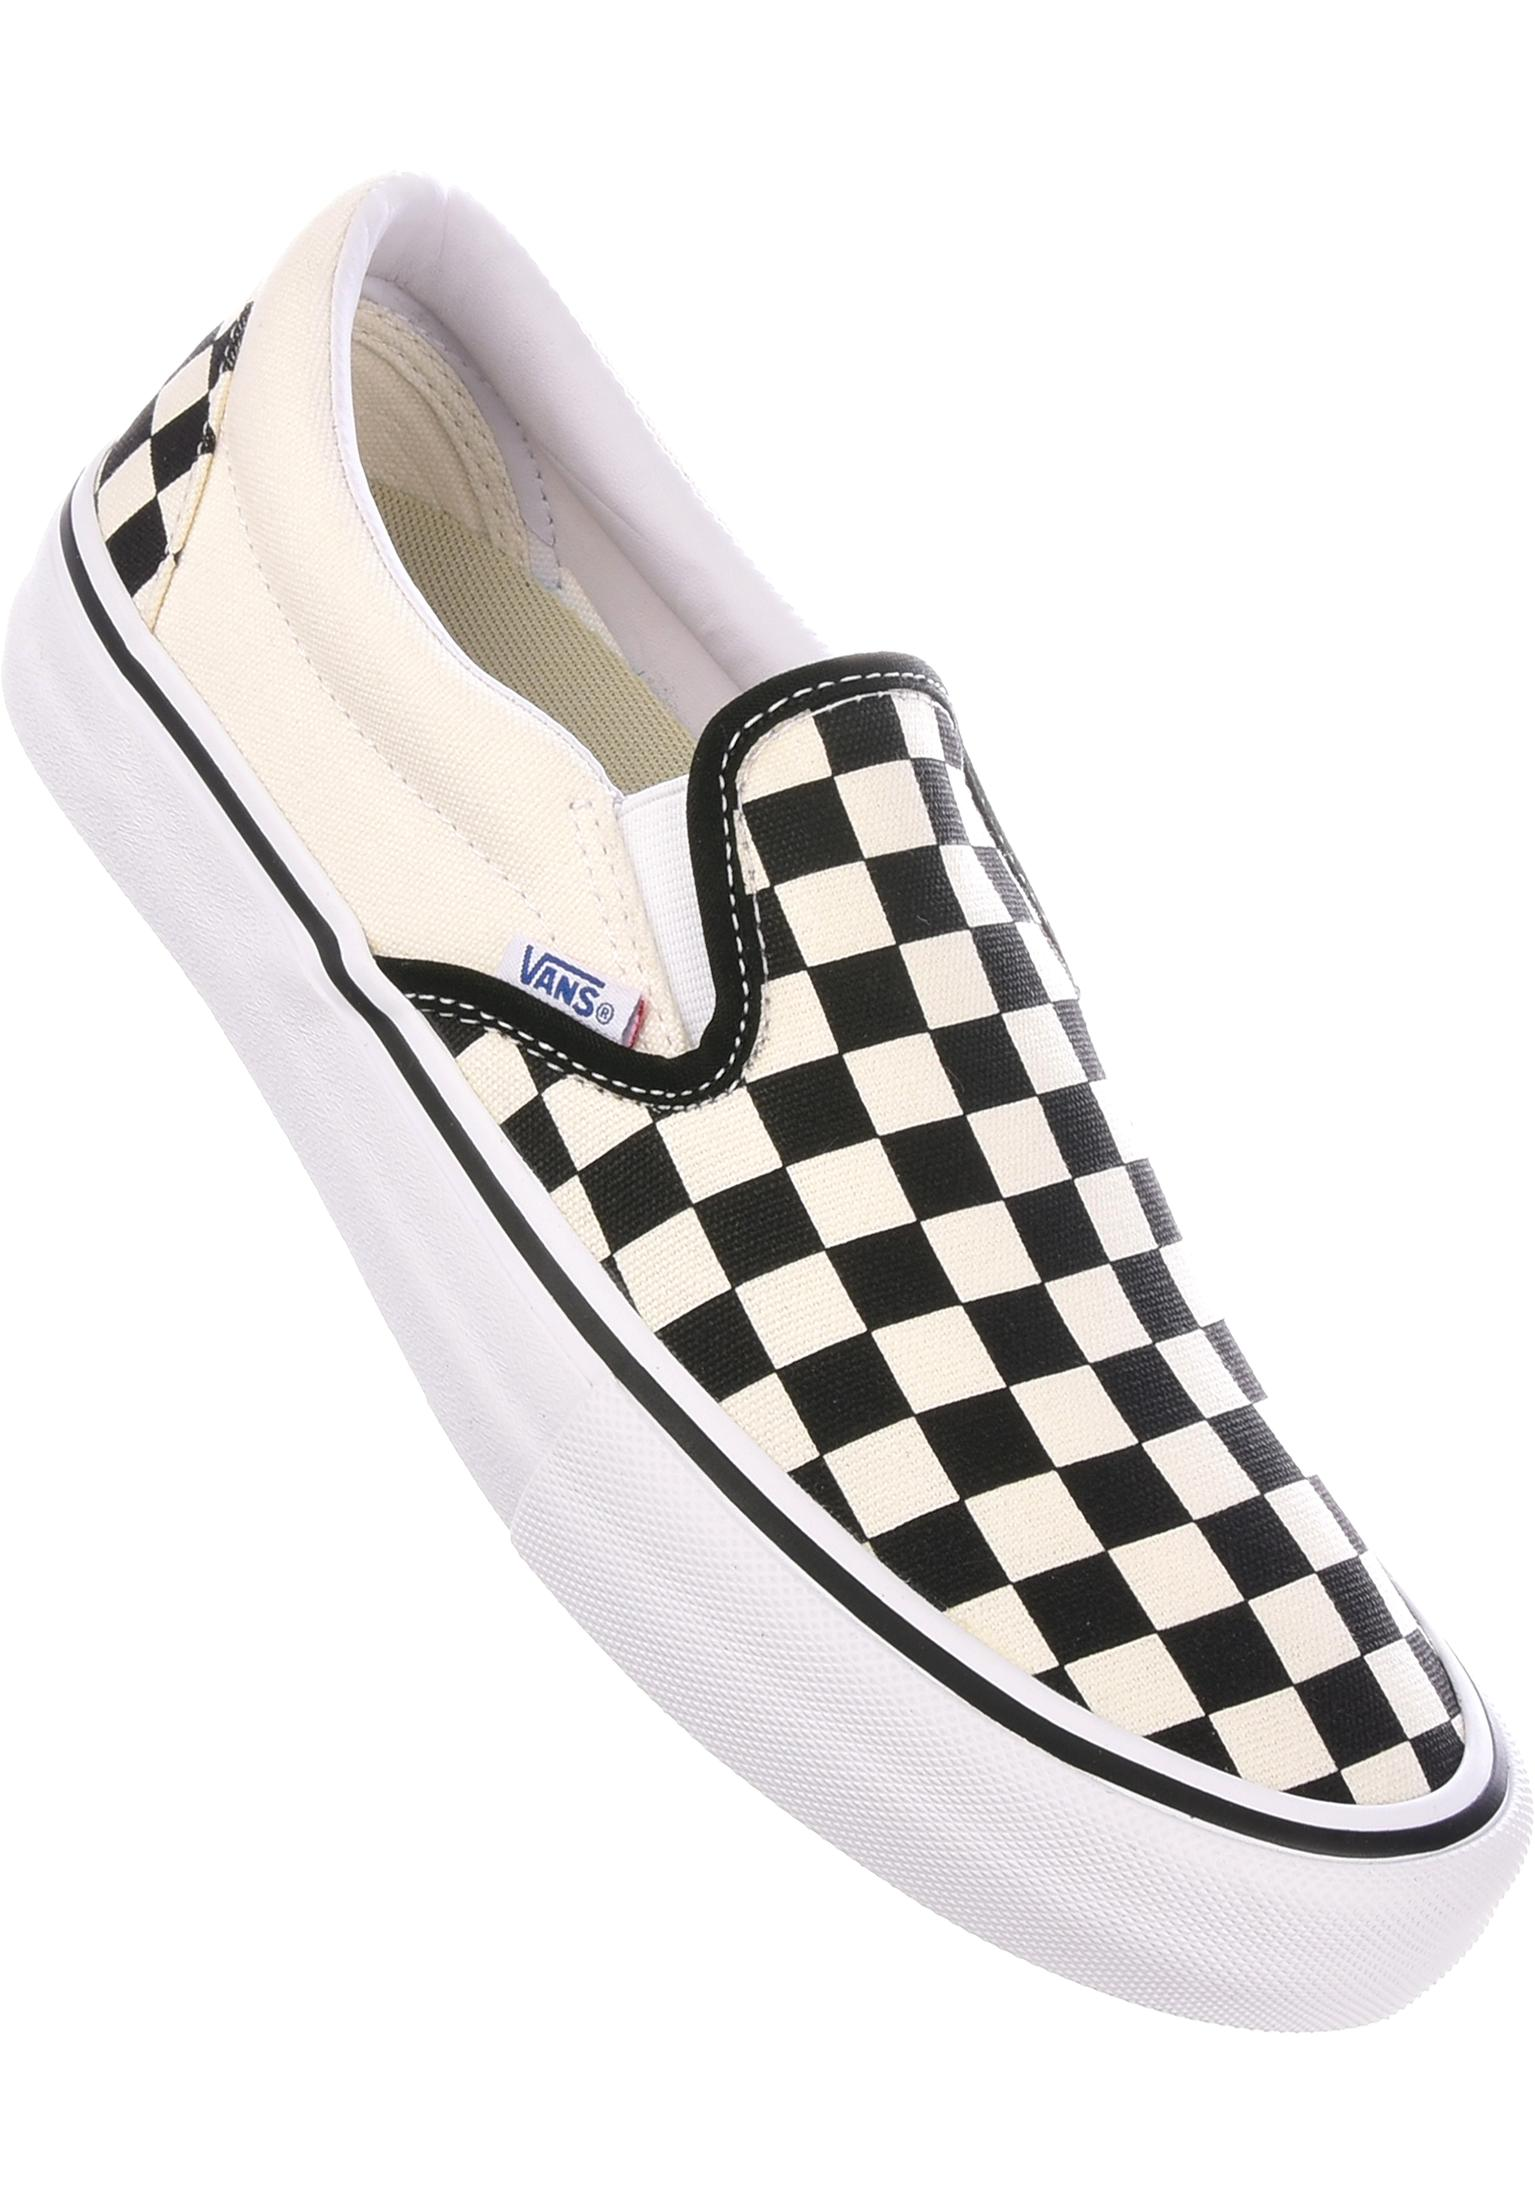 873e7d9f55c Slip-On Pro Vans All Shoes in white-black-checkerboard for Men